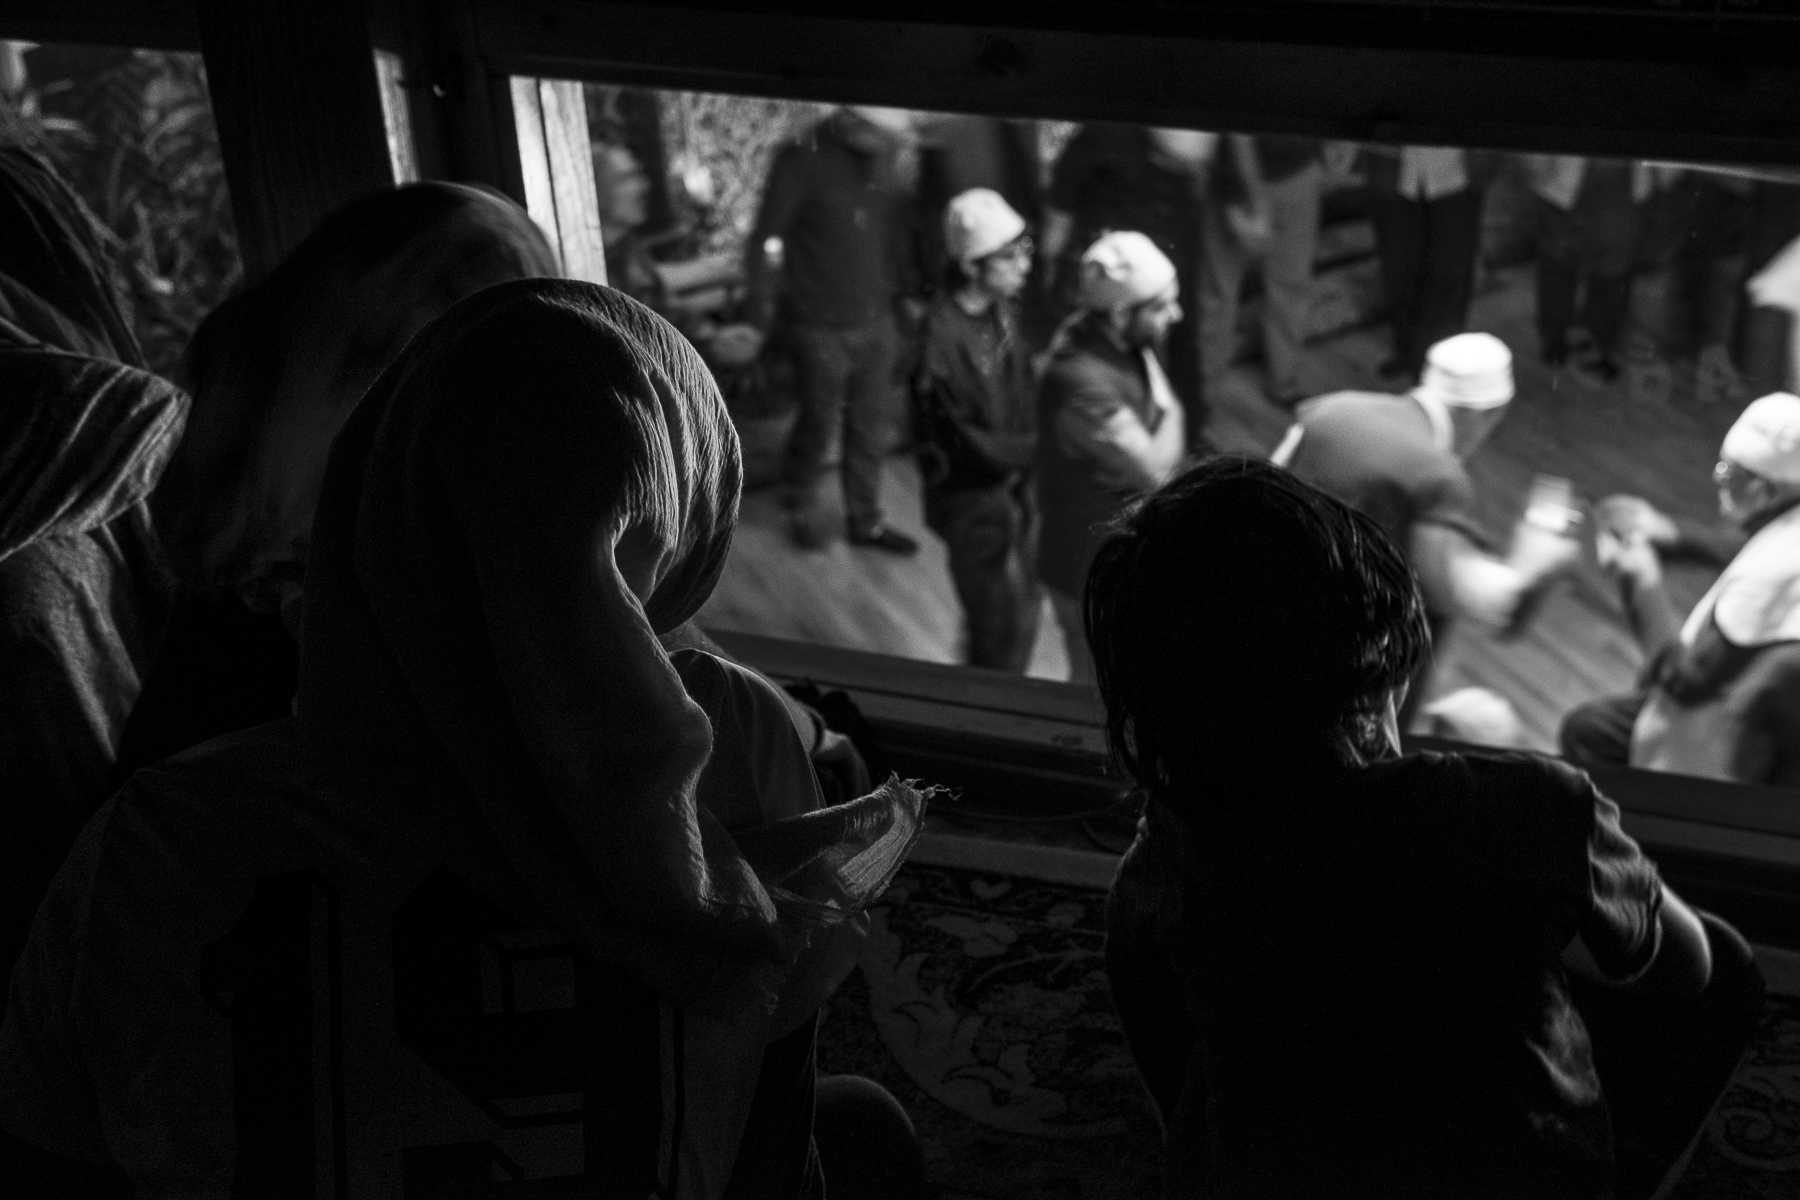 Young teenage girls watch the Zikr—a Sufi ceremony honoring Allah—through the upstairs window in the children's section of the mosque. Parents are required to keep their young children and babies with them during the Zikr, but teenagers are allowed to watch from above, with permission from their parents.